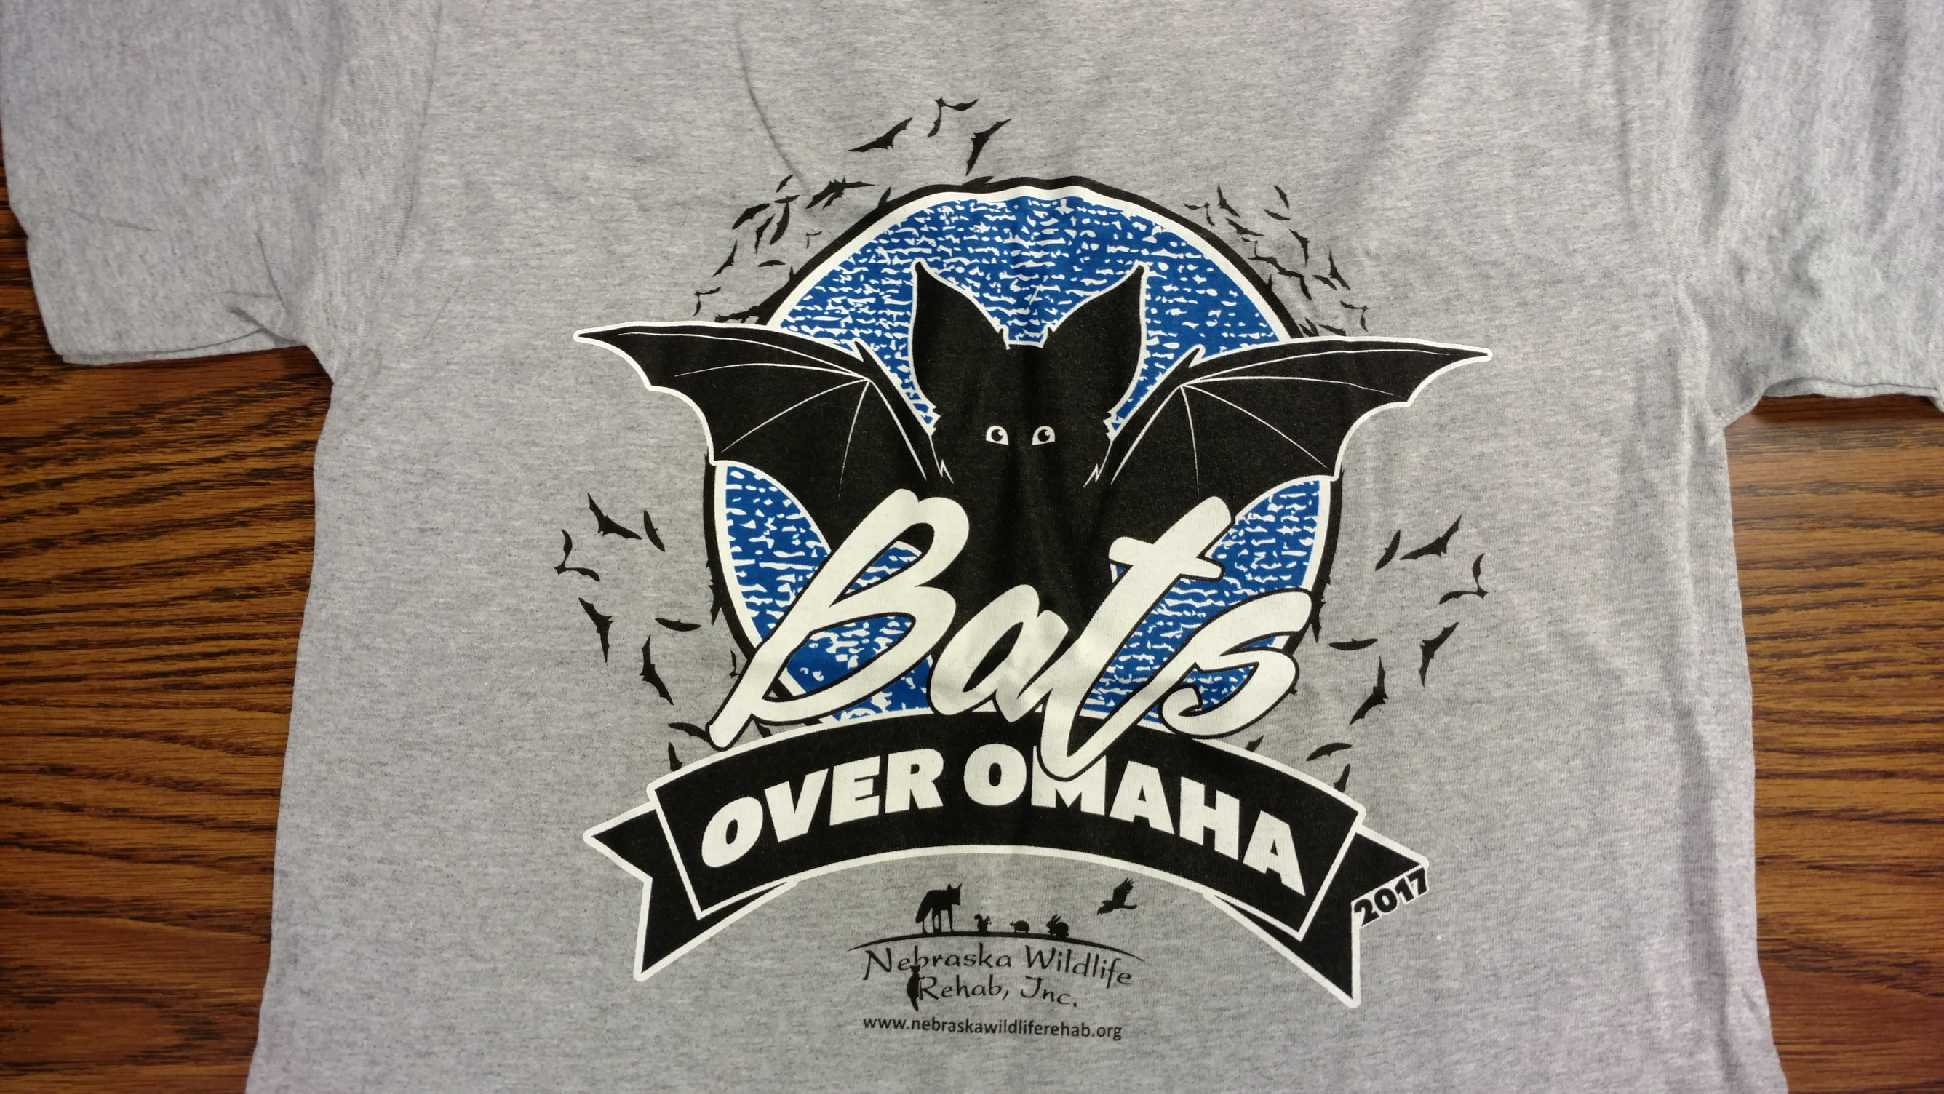 Bats Over Omaha Bat Release T-Shirt - 2017: Adult XL, Gray